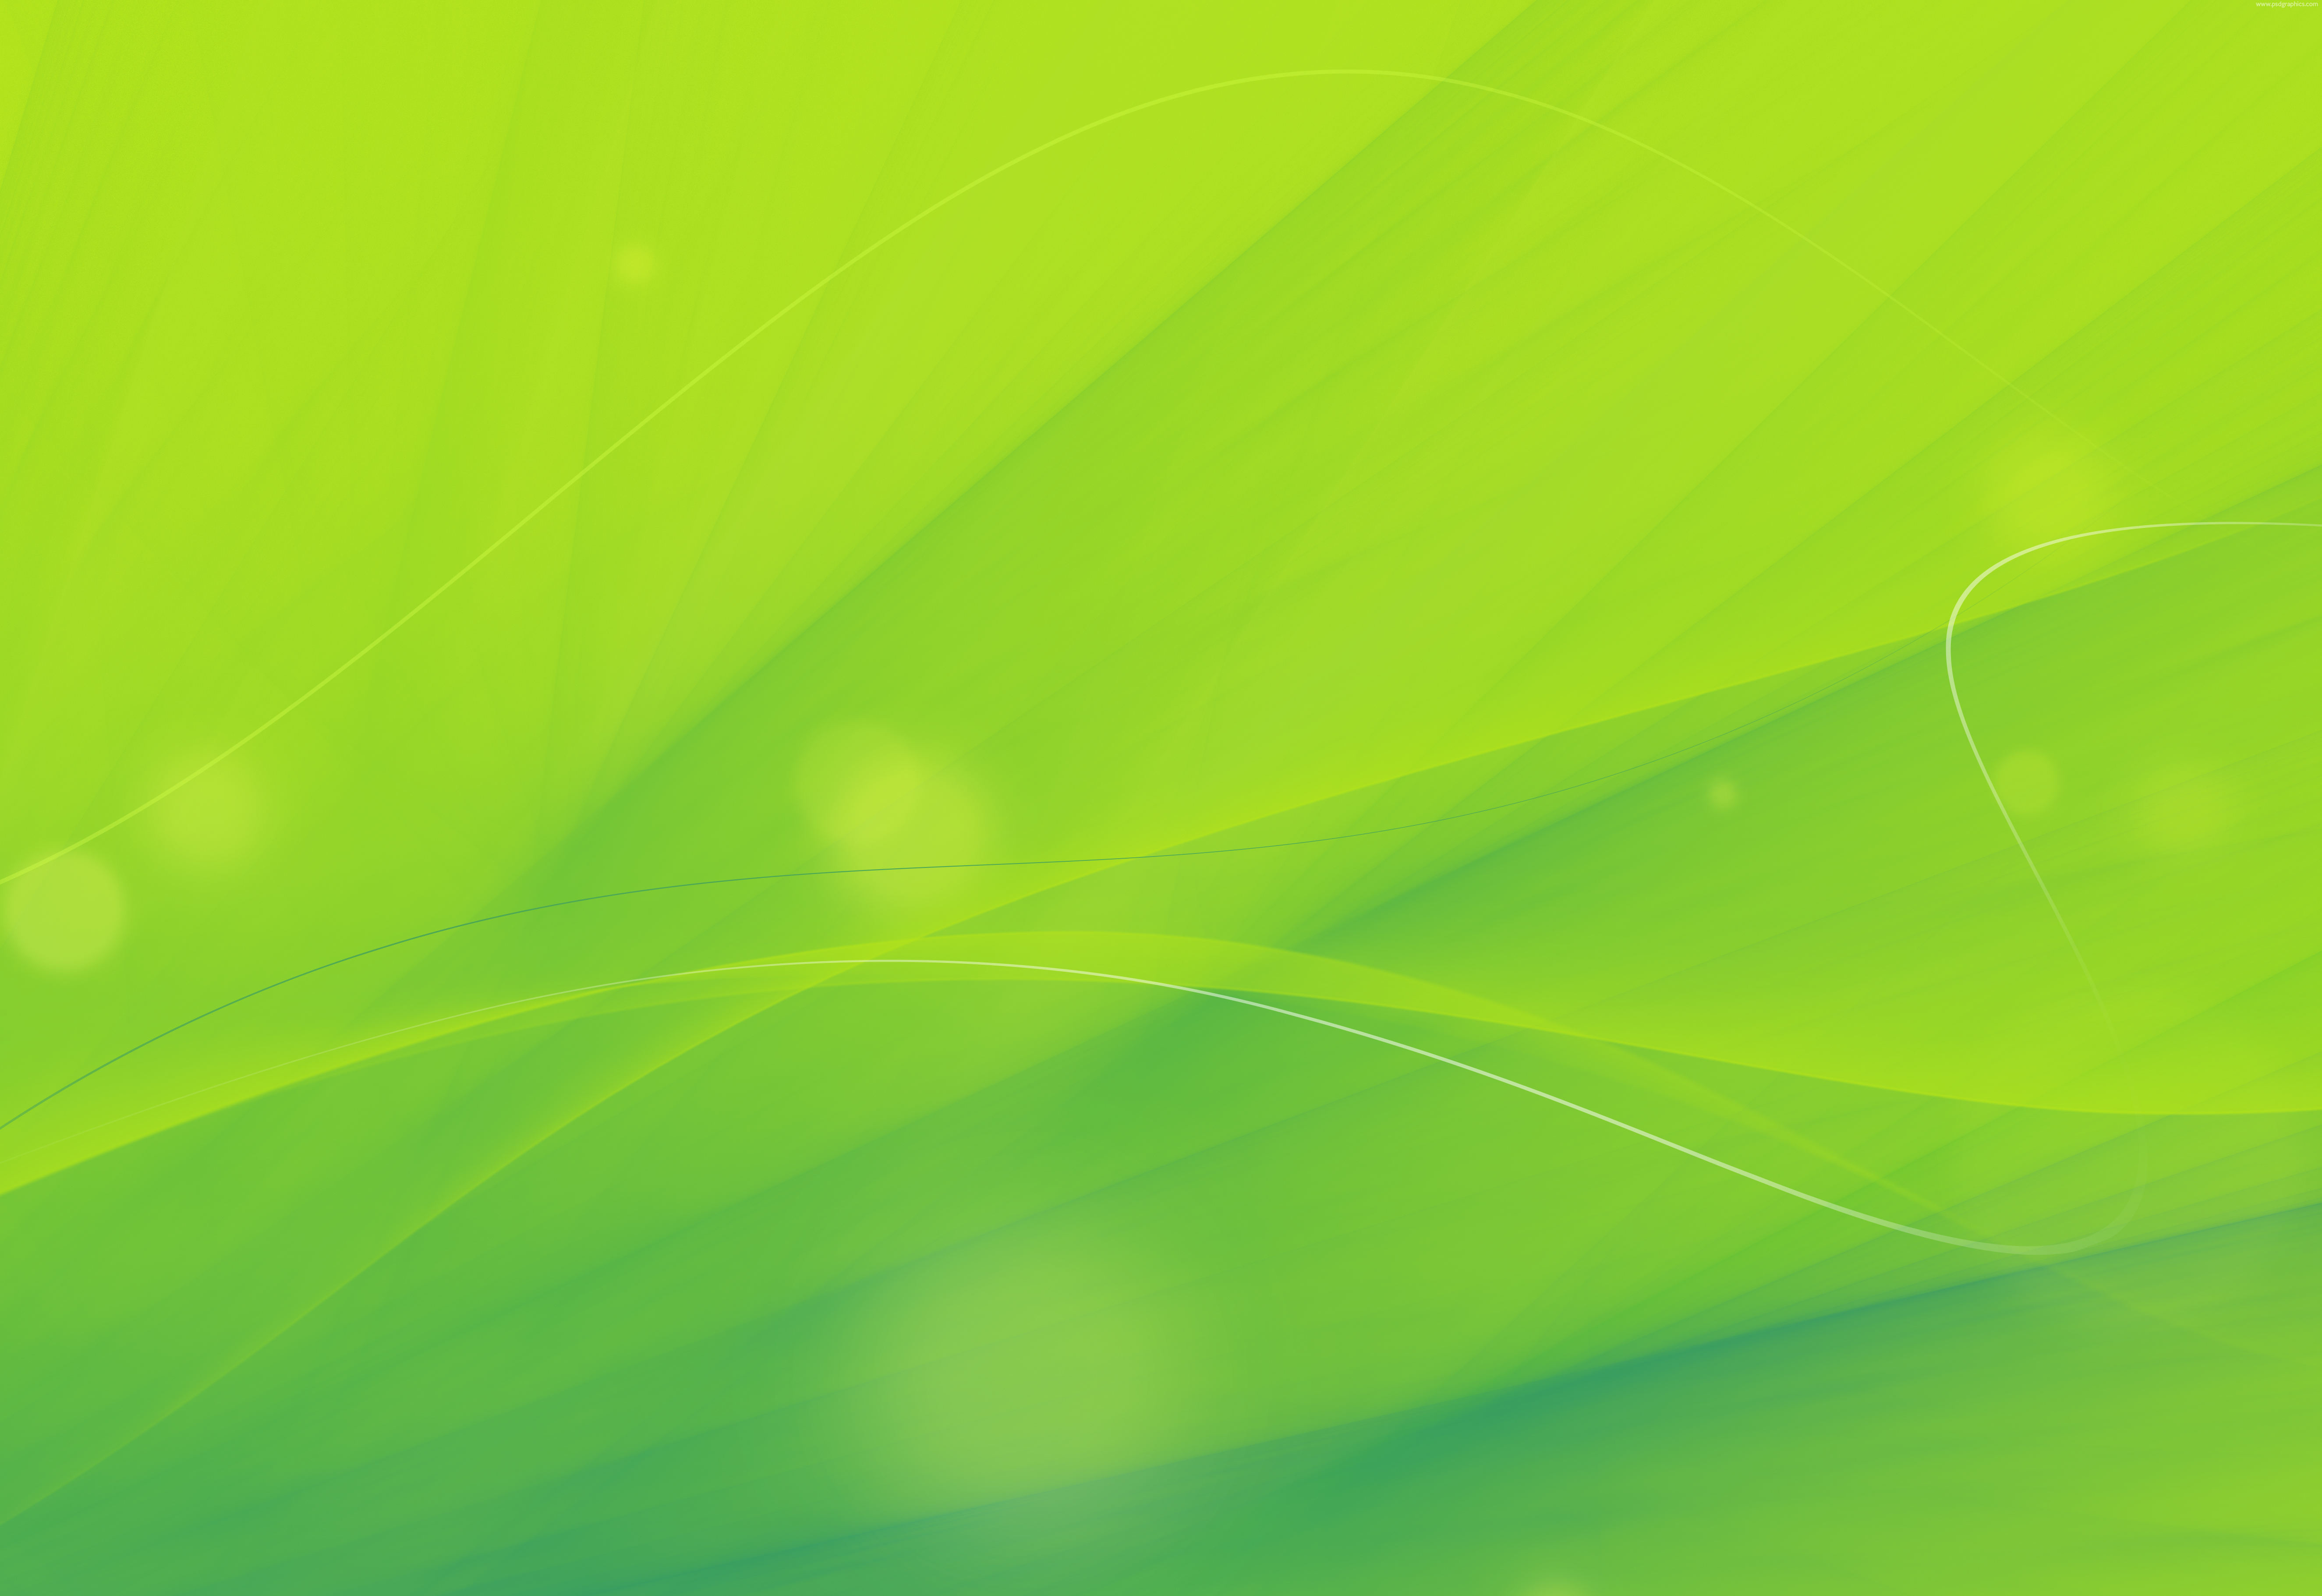 Lime Green Background Psdgraphics